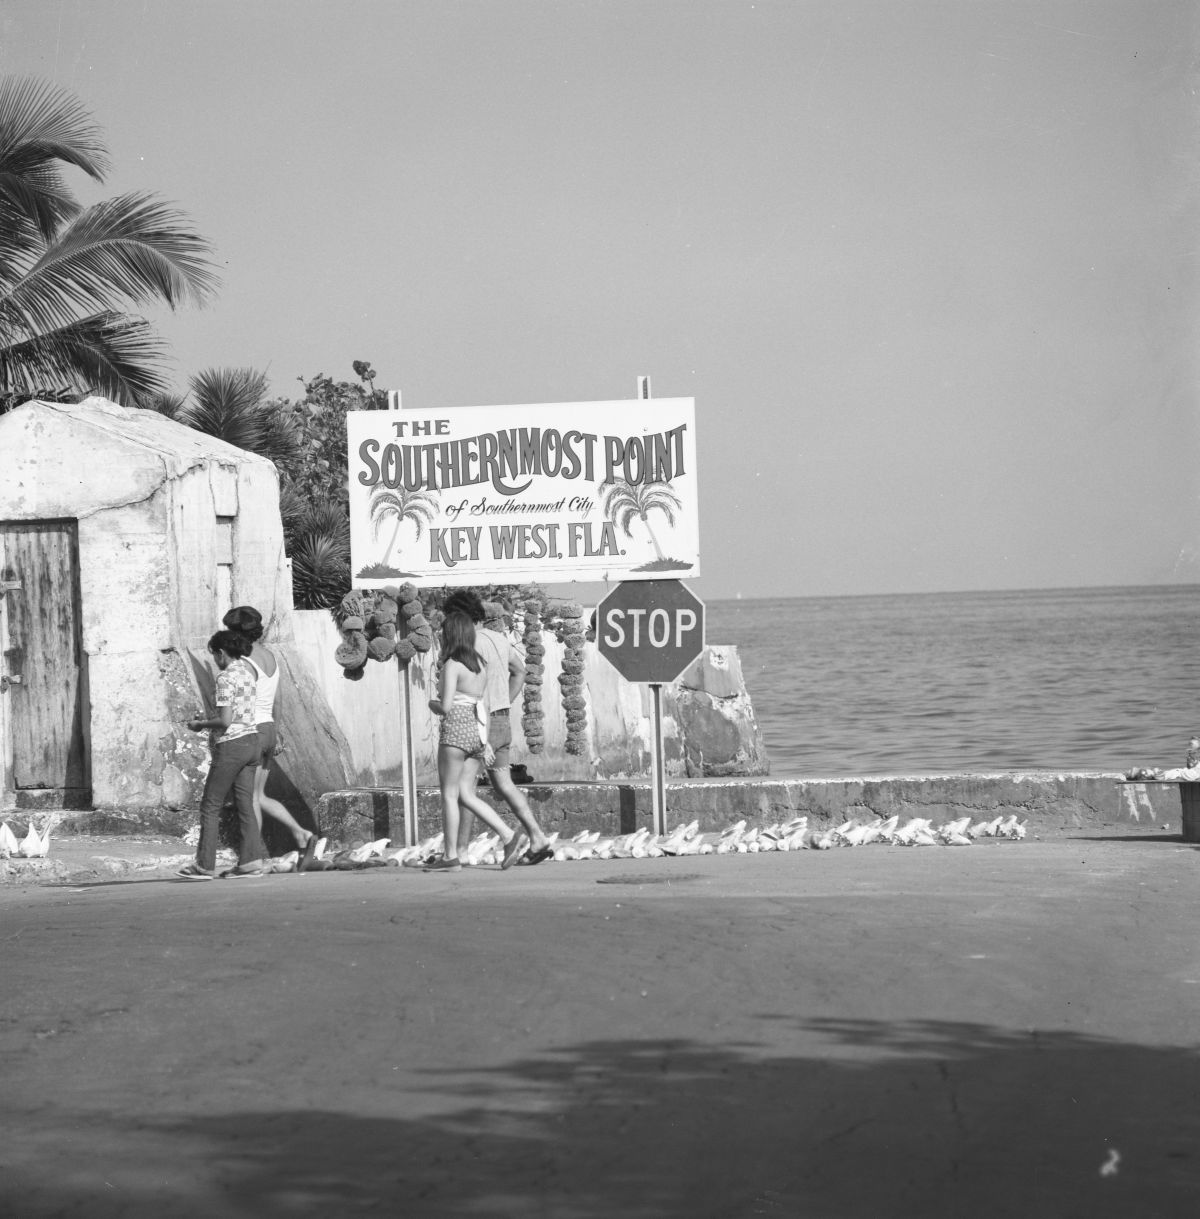 Sign for the southernmost point of the continental United States - Key West, Florida.